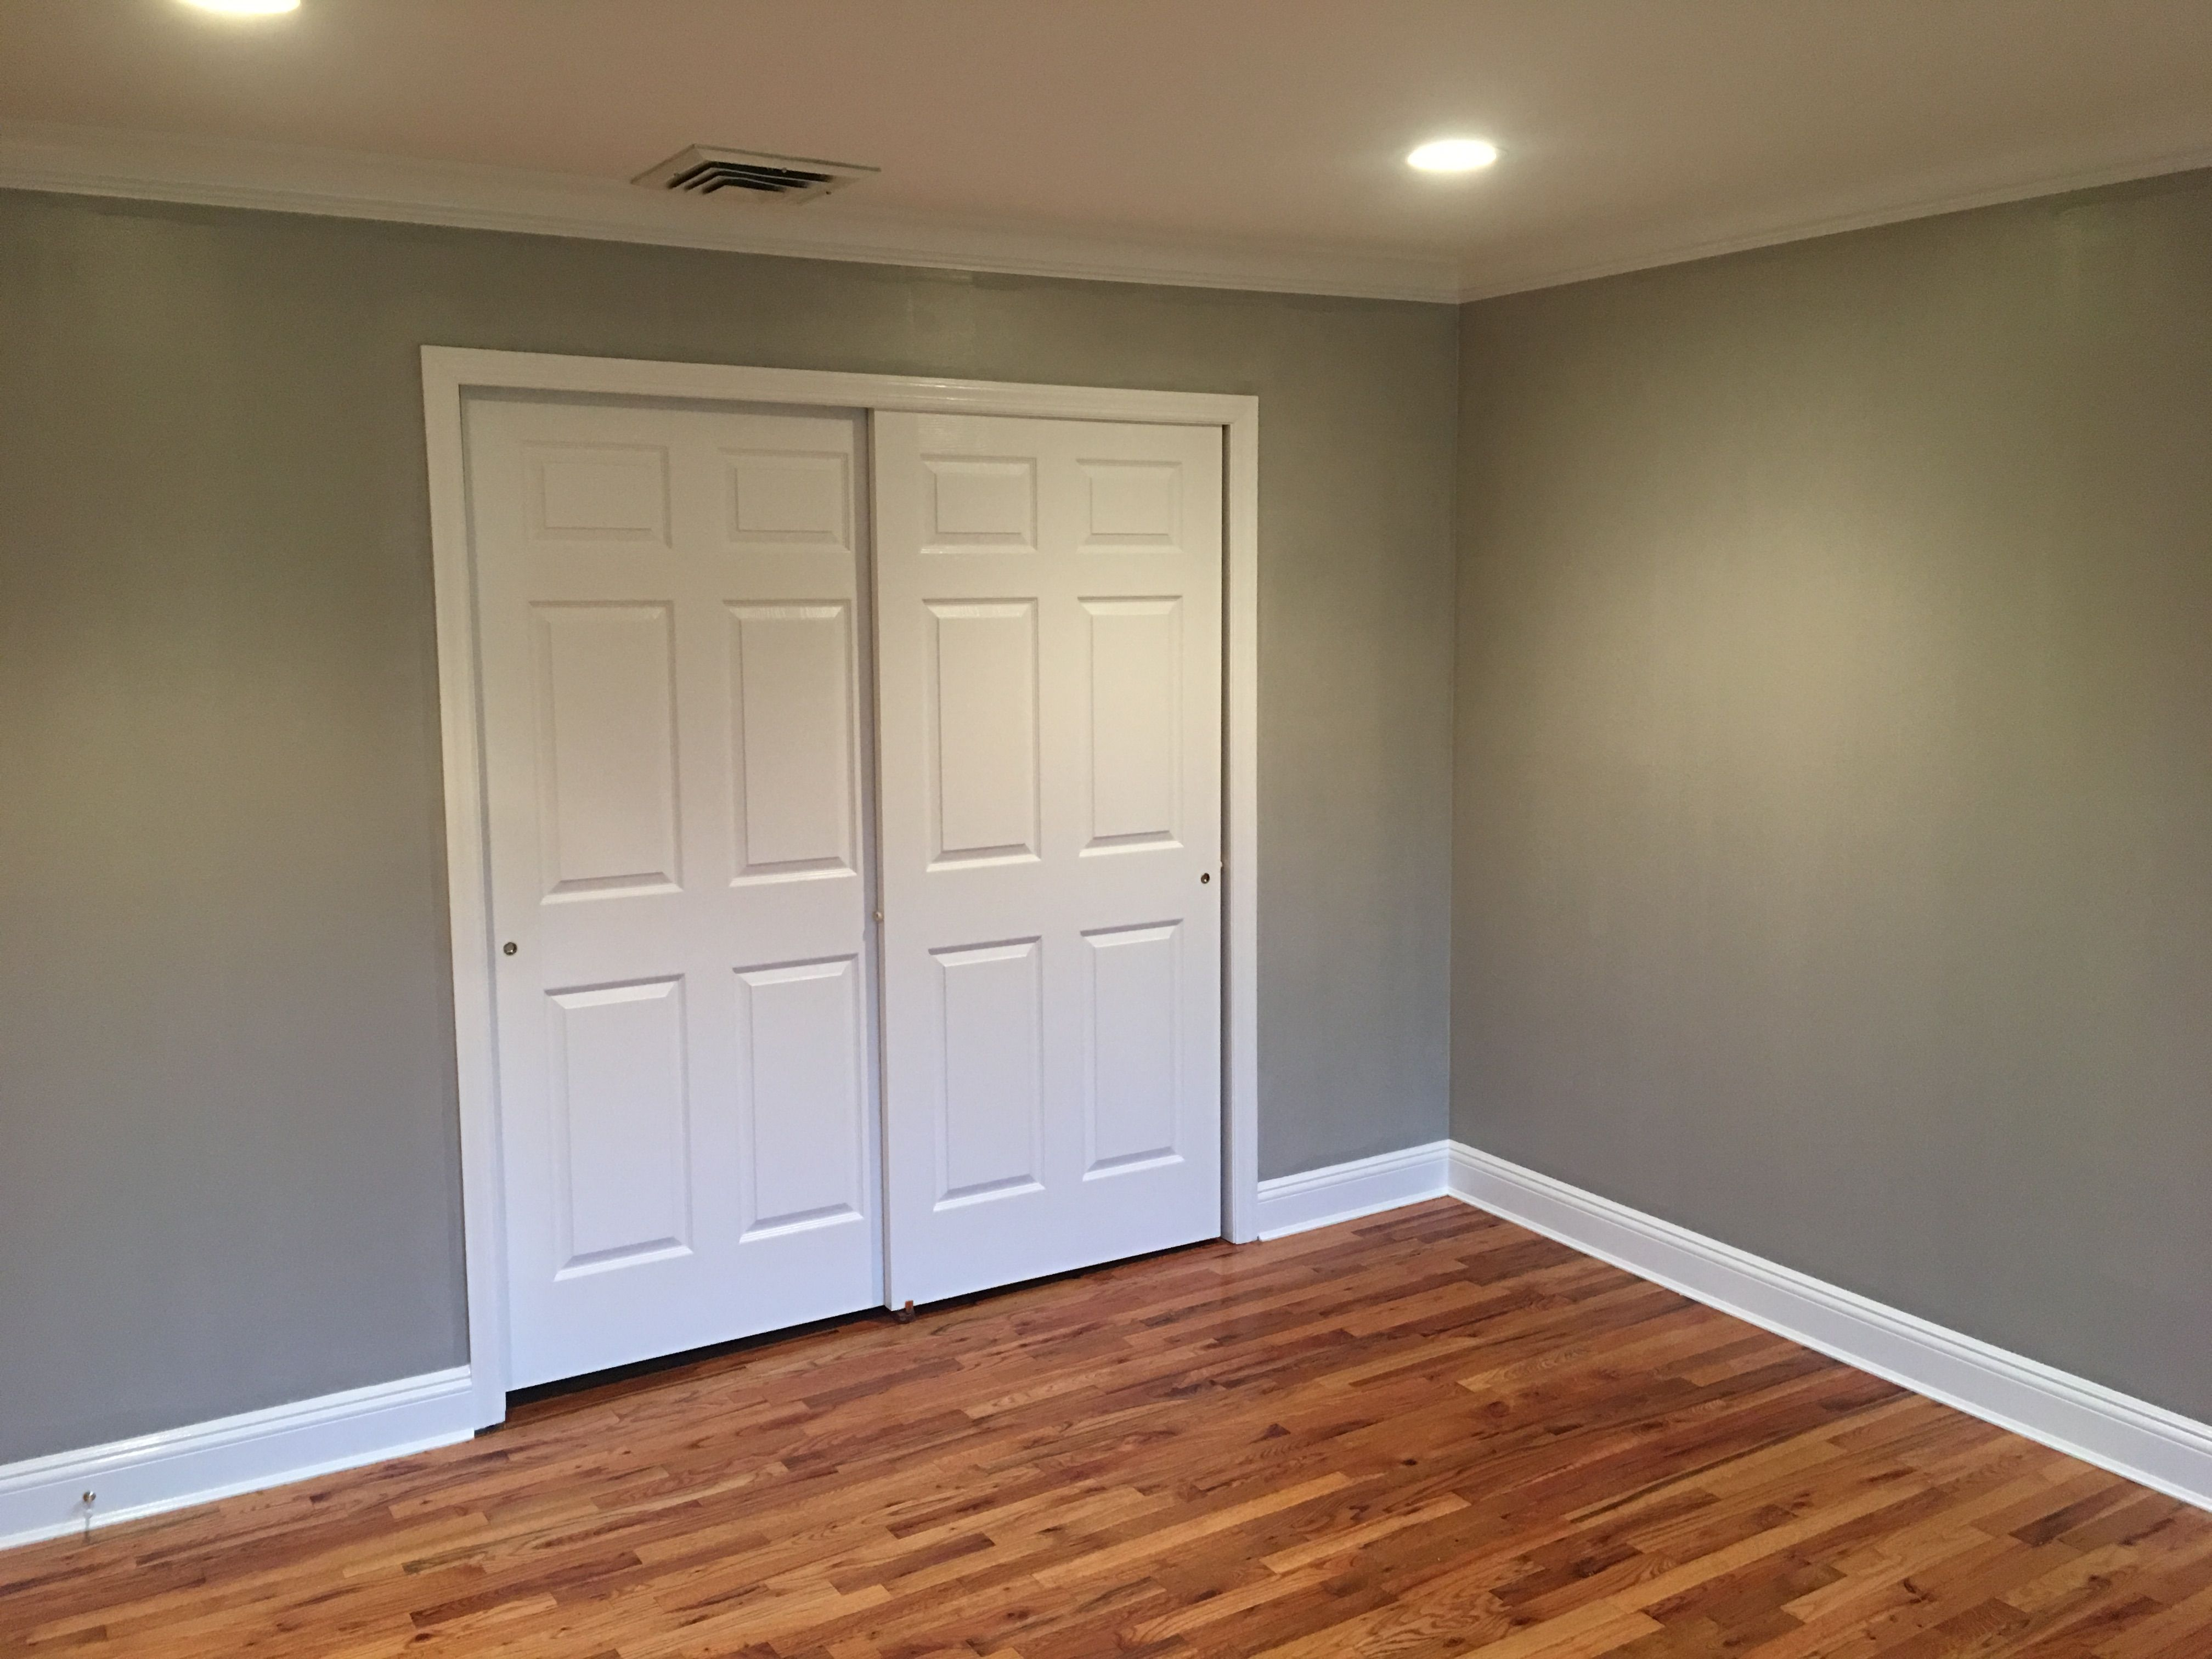 A fresh coat of benjamin moore ac 26 ozark shadows with regal select white flat on ceiling regal select white semi gloss on trim and doors with regal